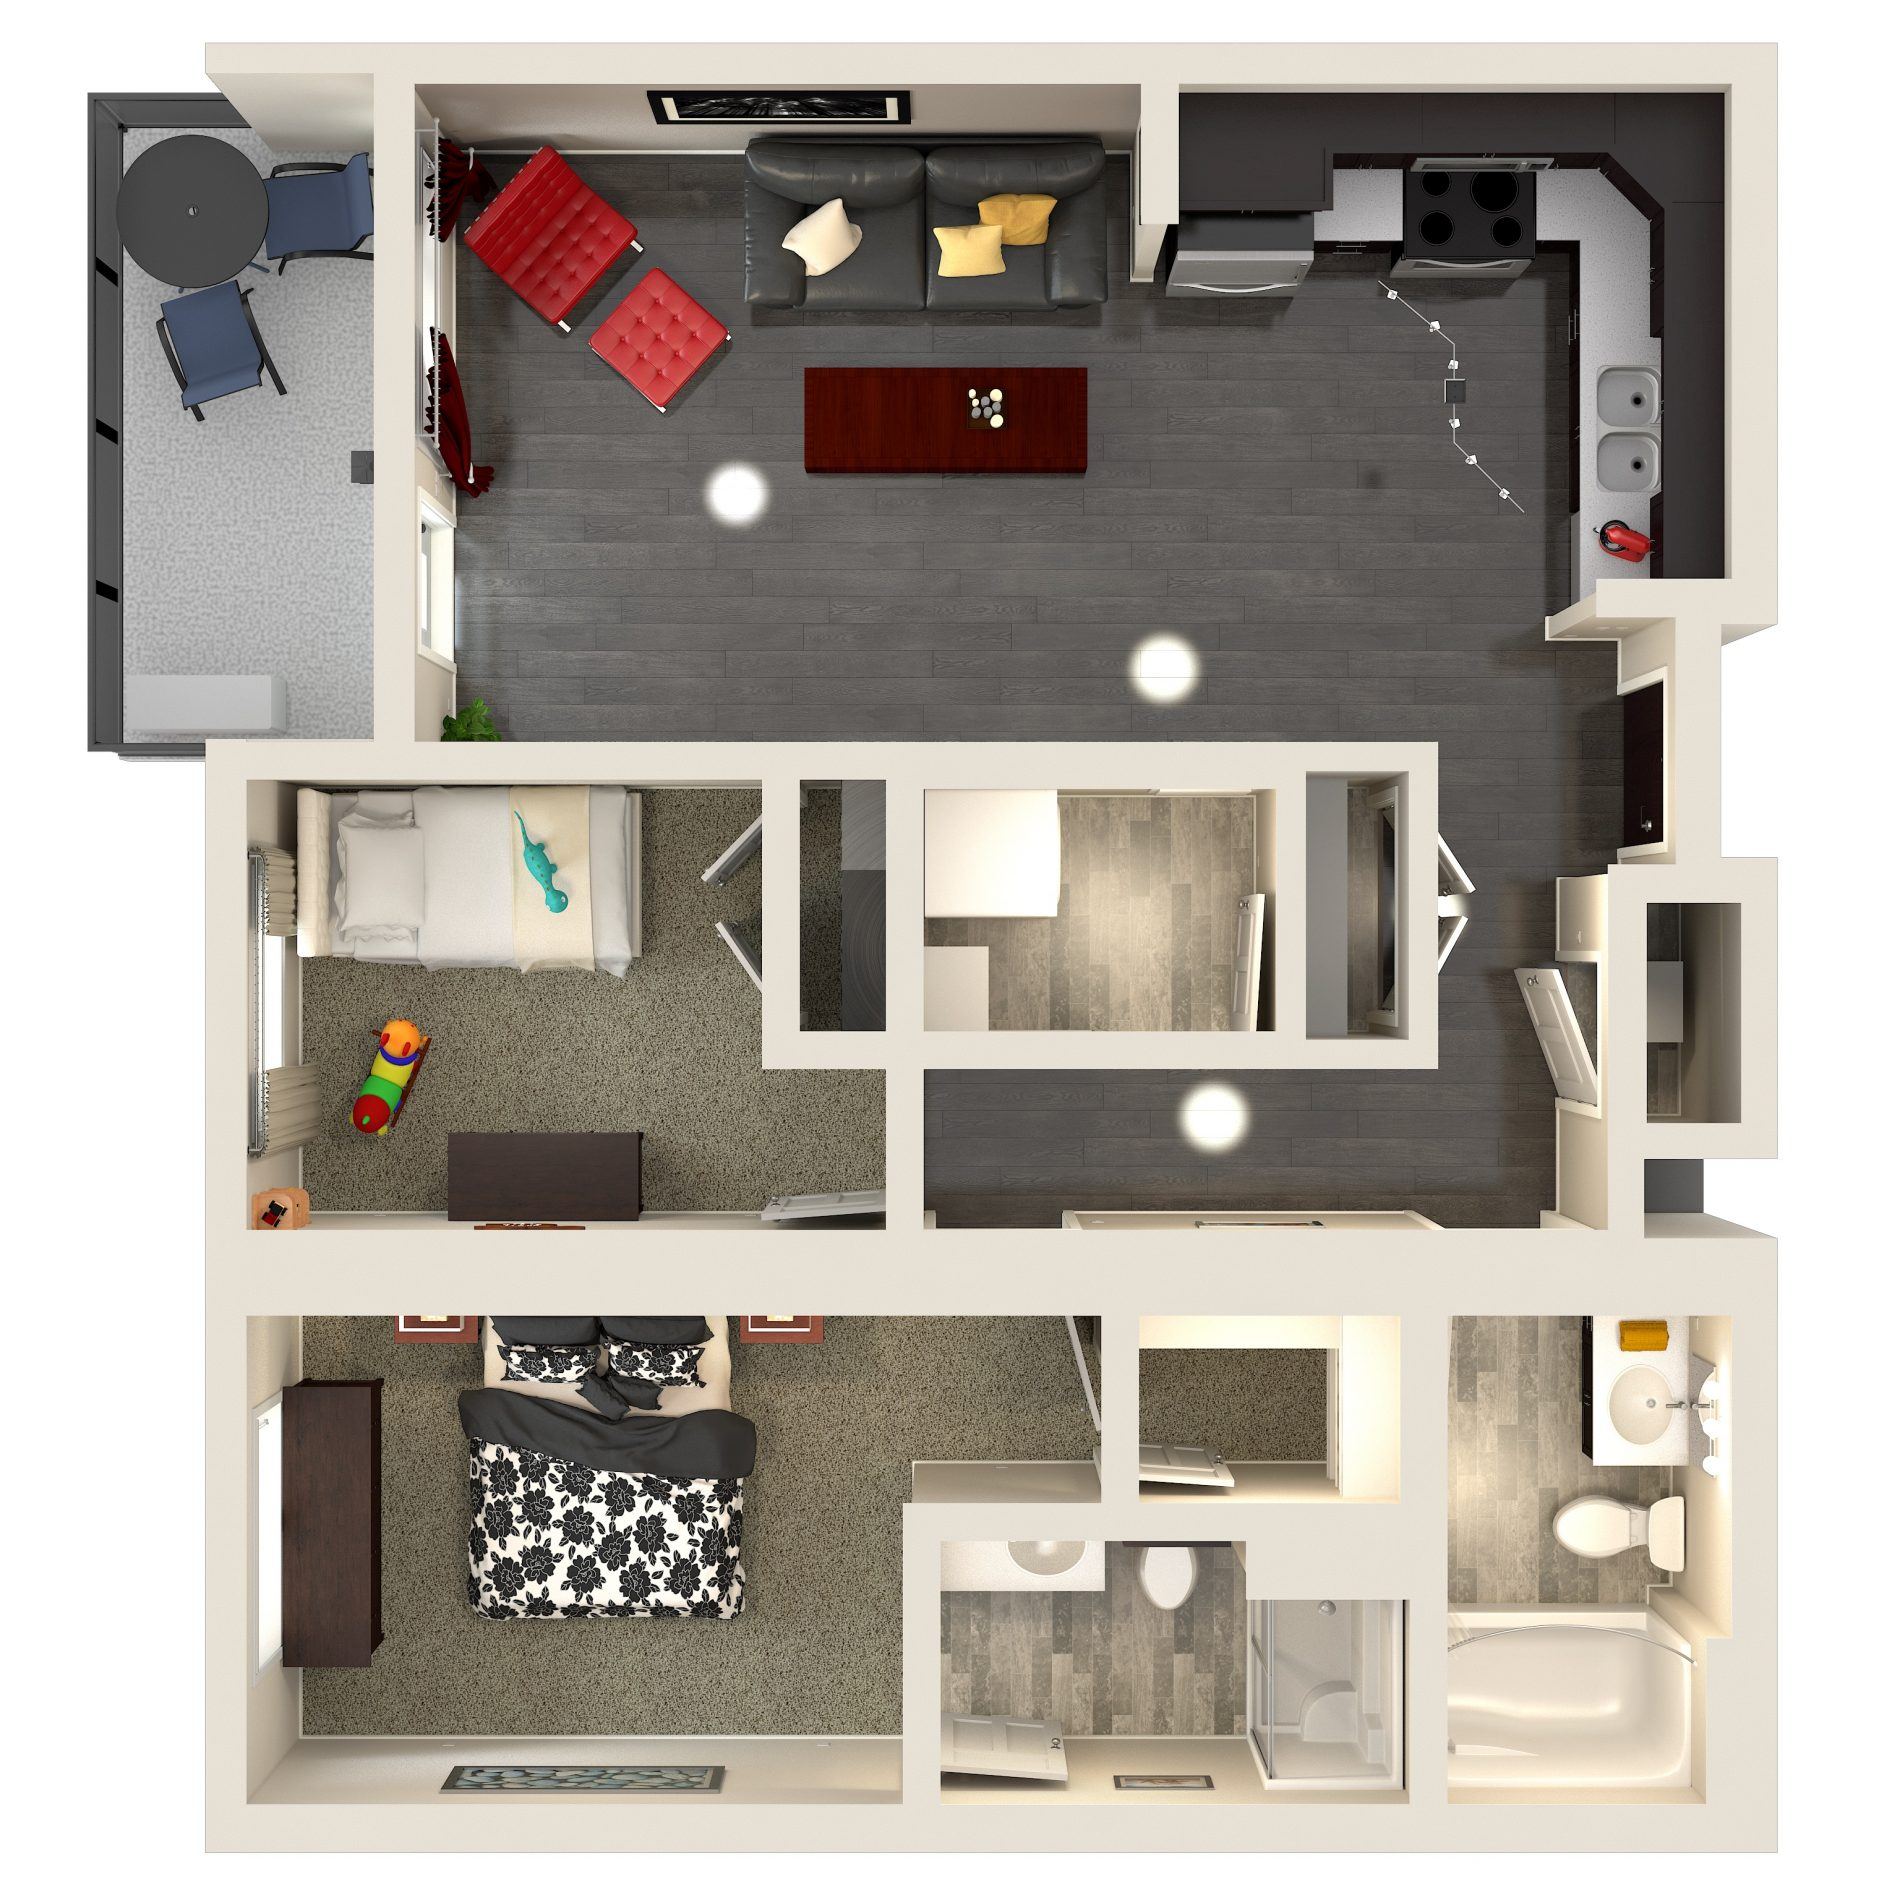 Urban Flats 2 Bedroom Condo Signature Floor Plan: 850 sq. ft. plan